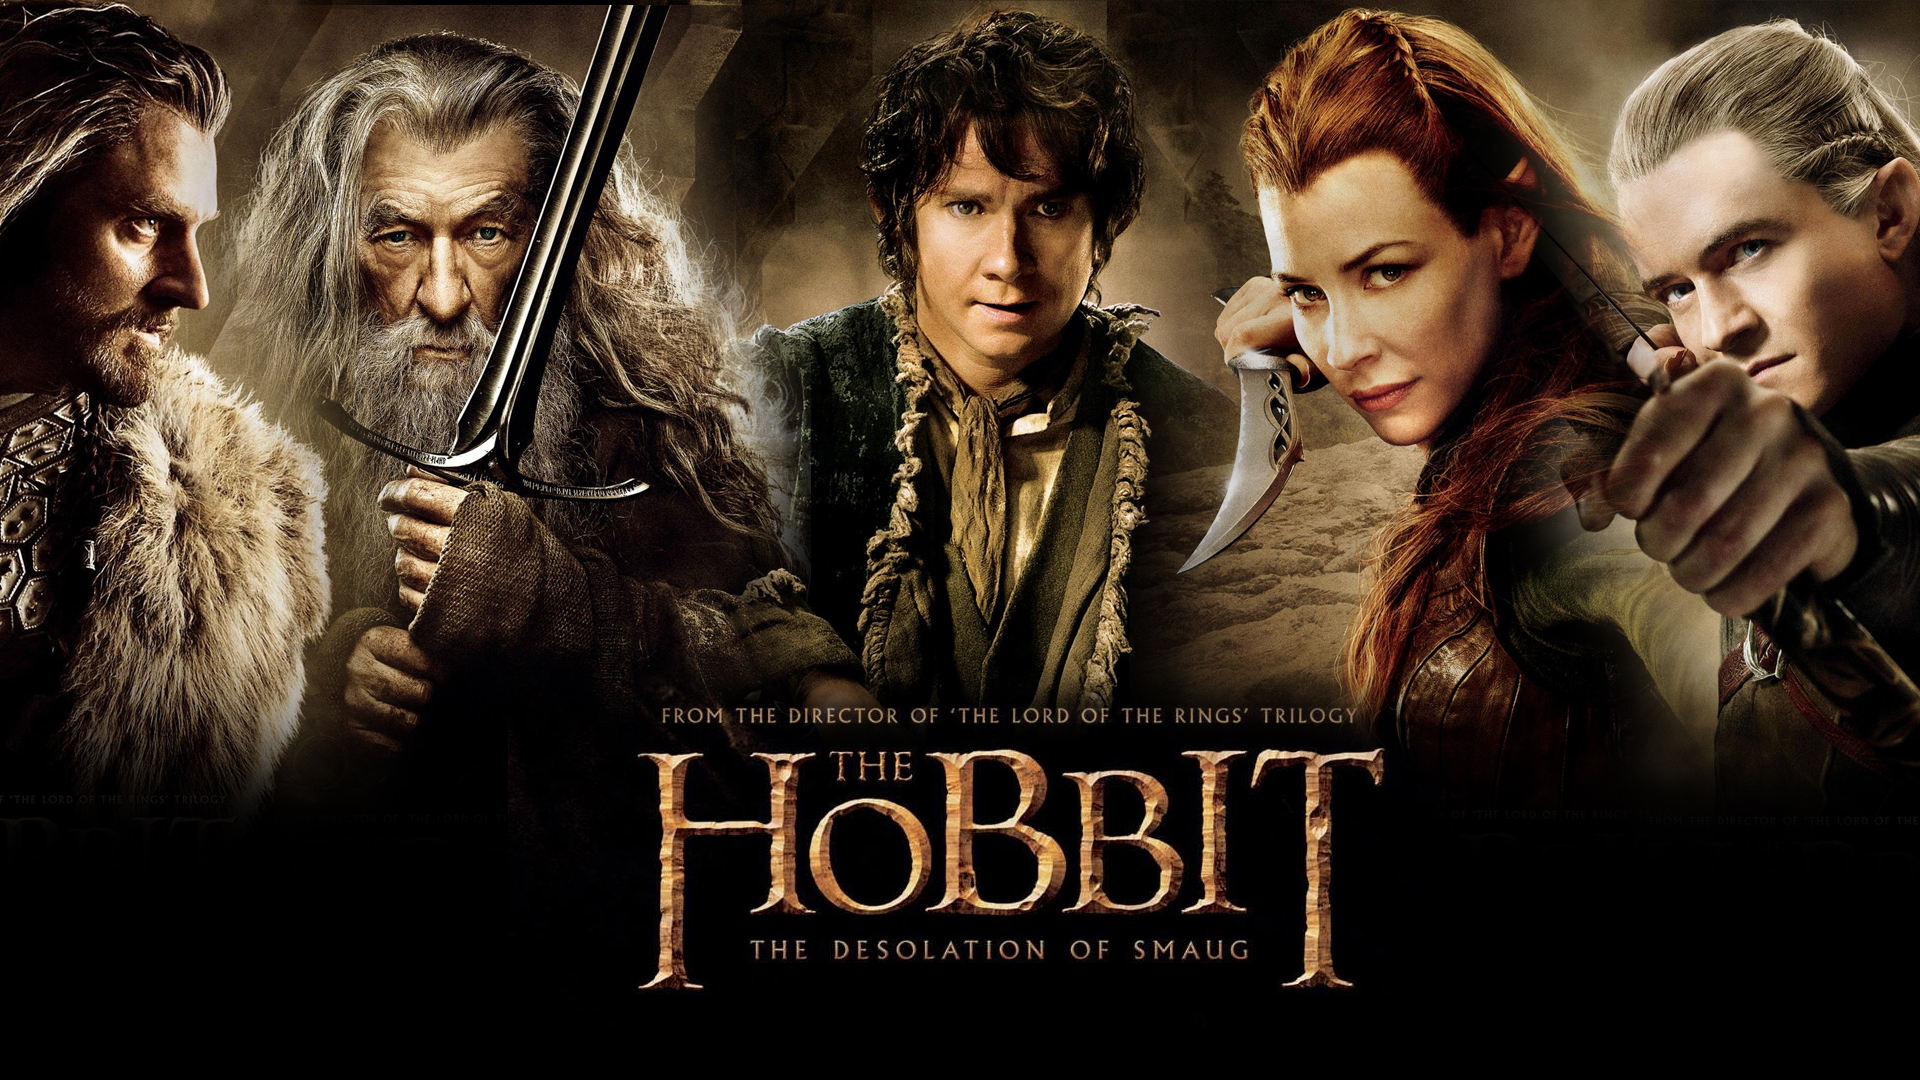 the hobbit: the desolation of smaug review – kg's movie rants